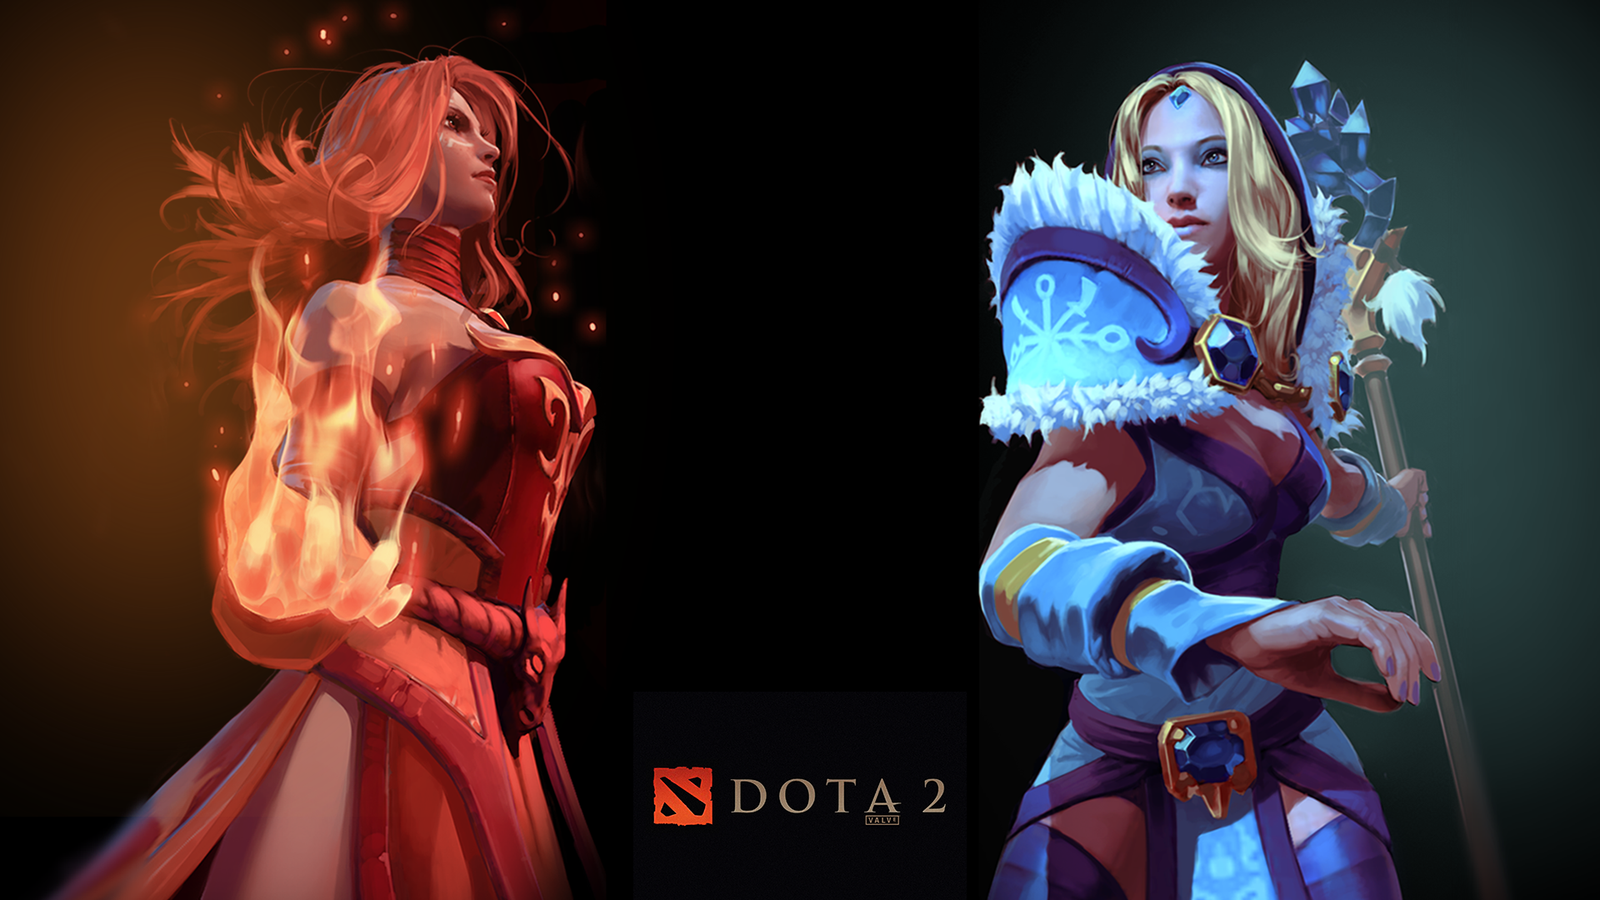 Dota 2 - Lina Crystal Maiden Wallpaper by GlowyKangarooDota Wallpaper Crystal Maiden